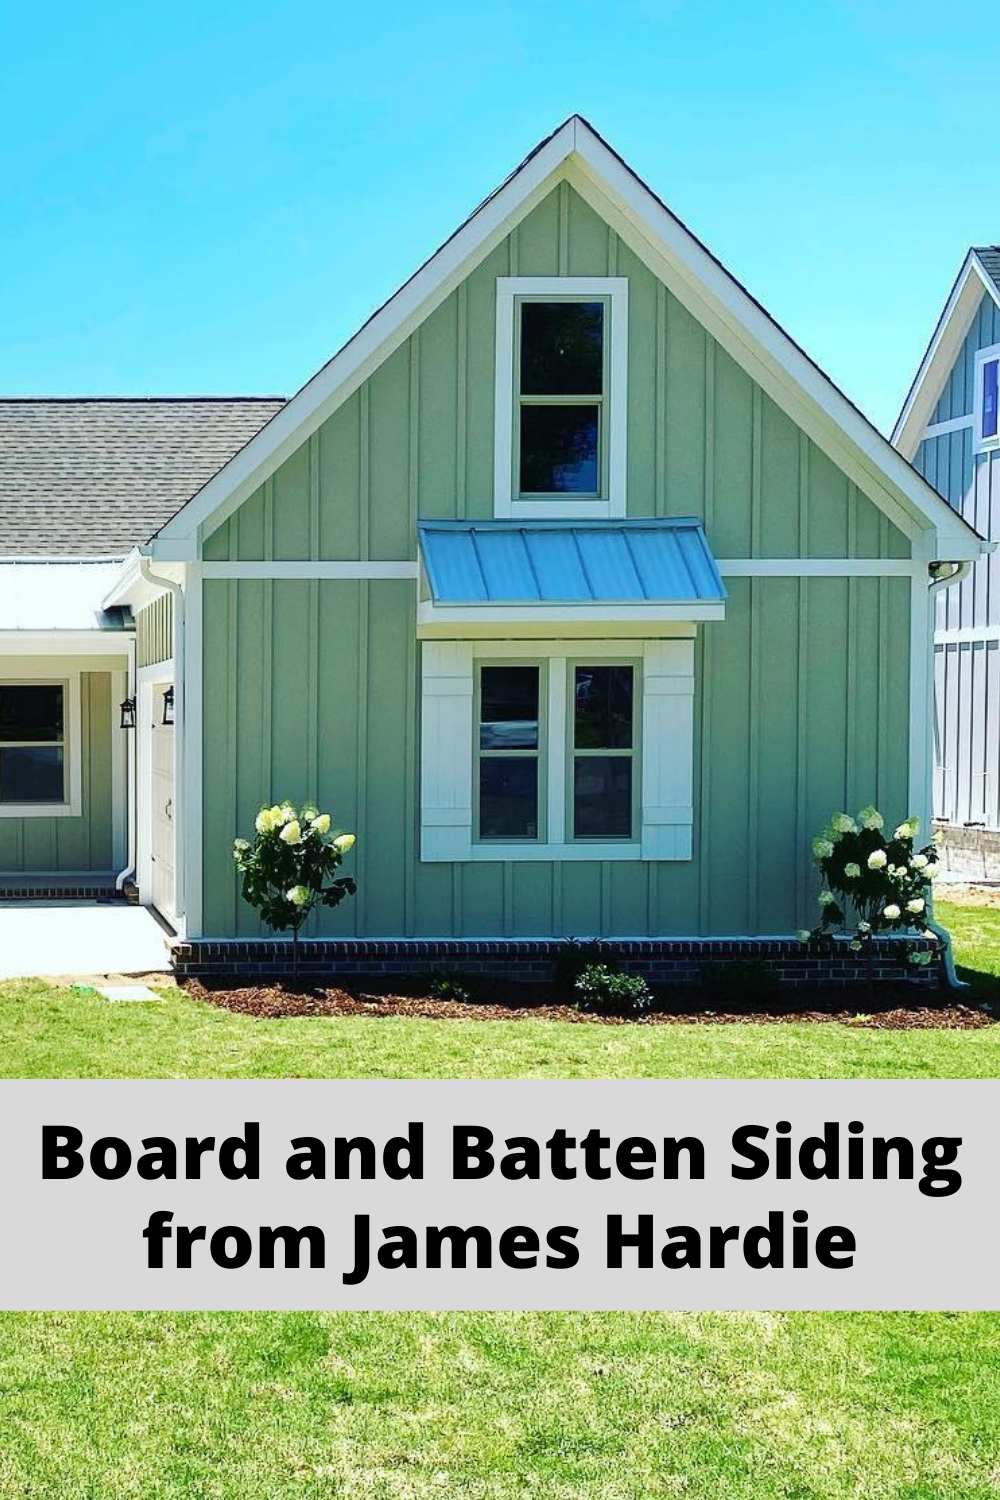 Board And Batten Siding For Ranch Houses Vertical Siding Board And Batten Siding Ranch Style Homes